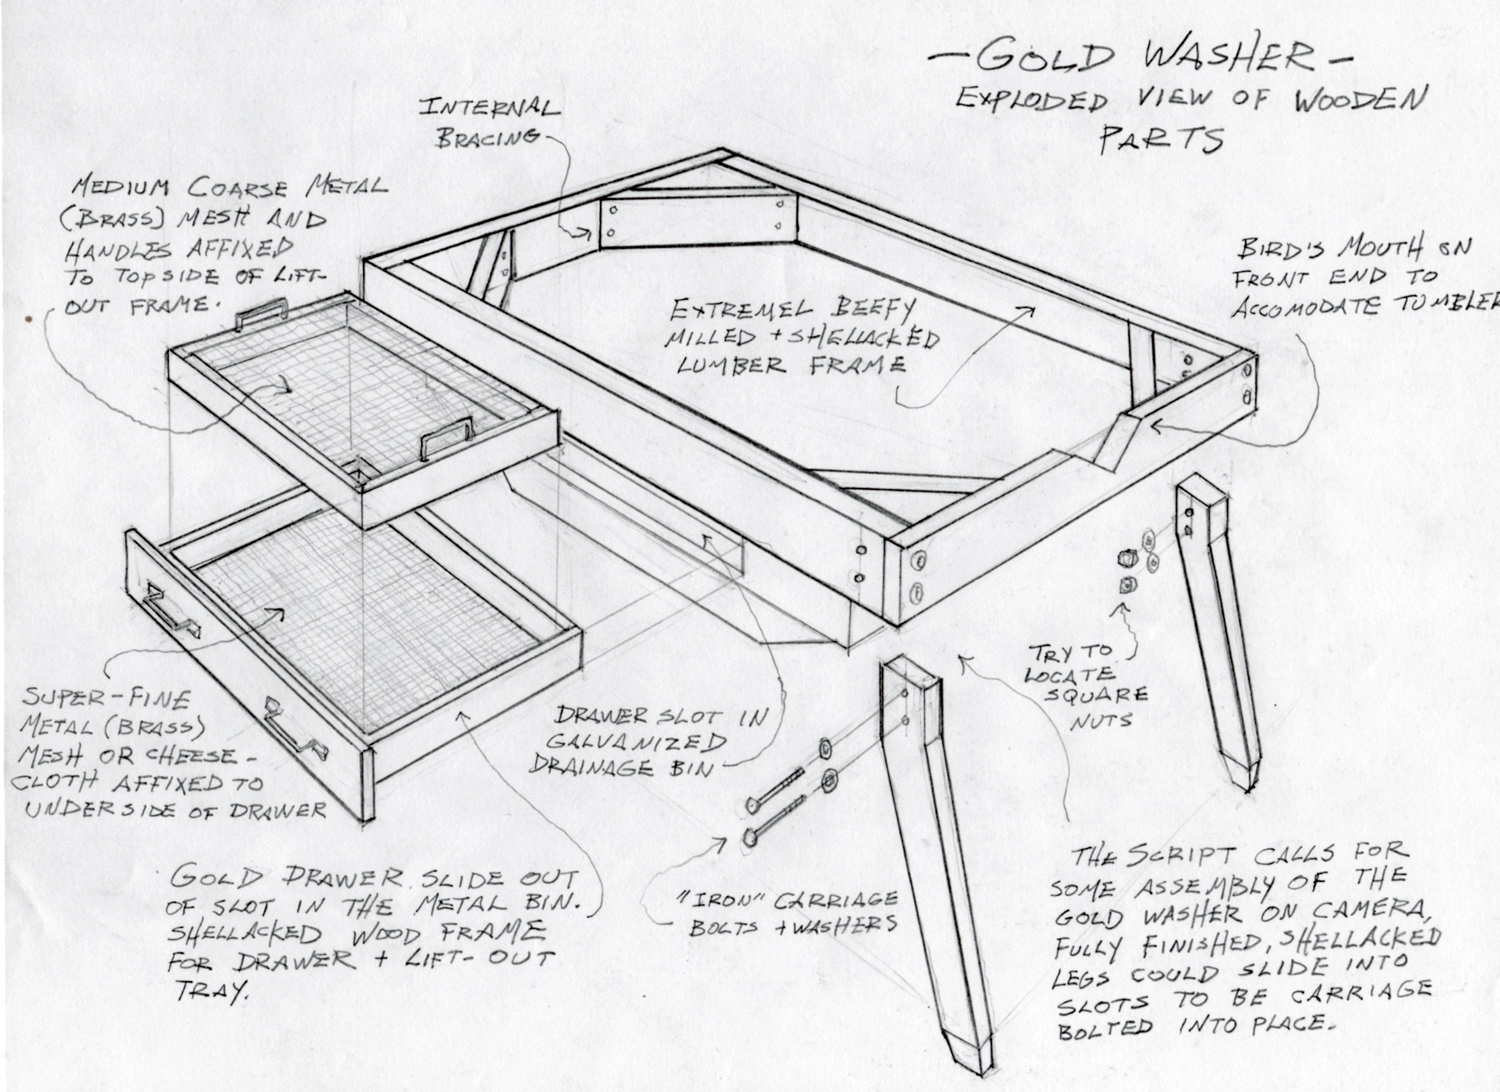 A sketch of the wooden parts required to build the gold washer.